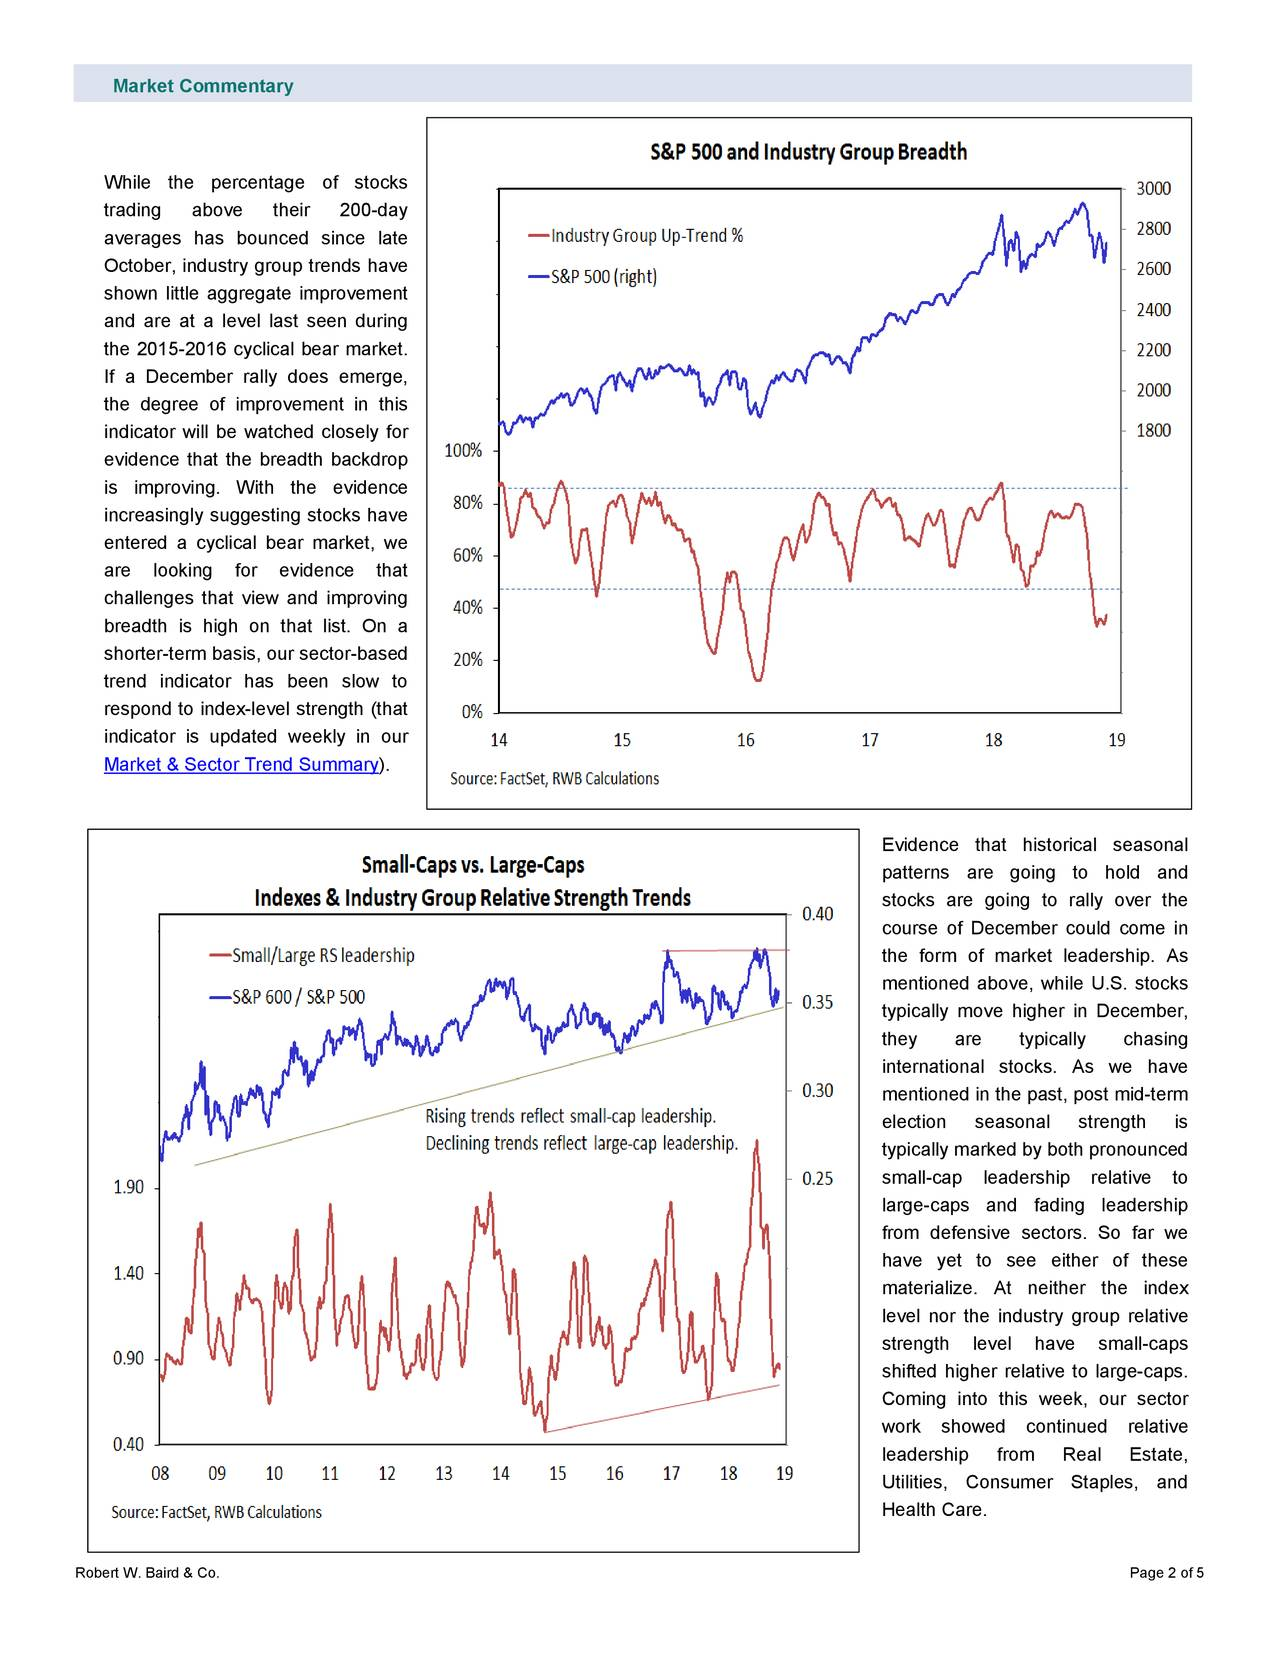 While the percentage of stocks trading above their 200-day averages has bounced since late October, industry group trends have shown little aggregate improvement and are at a level last seen during the 2015-2016 cyclical bear market. If a December rally does emerge, the degree of improvement in this indicator will be watched cl osely for evidence that the breadth backdrop is improving. With the ev idence increasingly suggesting stocks have entered a cyclical bear market, we are looking for evidence that challenges that view and improving breadth is high on that list. On a shorter-term basis, our sector-based trend indicator has been slow to respond to index-level strength (that indicator is updated weekly in our Market & Sector Trend Summary ). Evidence that historical seasonal patterns are going to hold and stocks are going to rally over the course of December could come in the form of market leadership. As mentioned above, while U.S. stock s typically move higher in December, they are typically chasing international stocks. As we have mentioned in the past, post mid-term election seasonal strength is typically marked by both pronounced small-cap leadership relative to large-caps and fading leadership from defensive sectors. So far we have yet to see either of these materialize. At neither the index level nor the industry group relative strength level have small -caps shifted higher relative to large -caps. Coming into this week, our sector work showed continued relative leadership from Real Estate, Utilities, Consumer Staples, and Health Care. Robert W. Baird & Co. Page 2 of 5